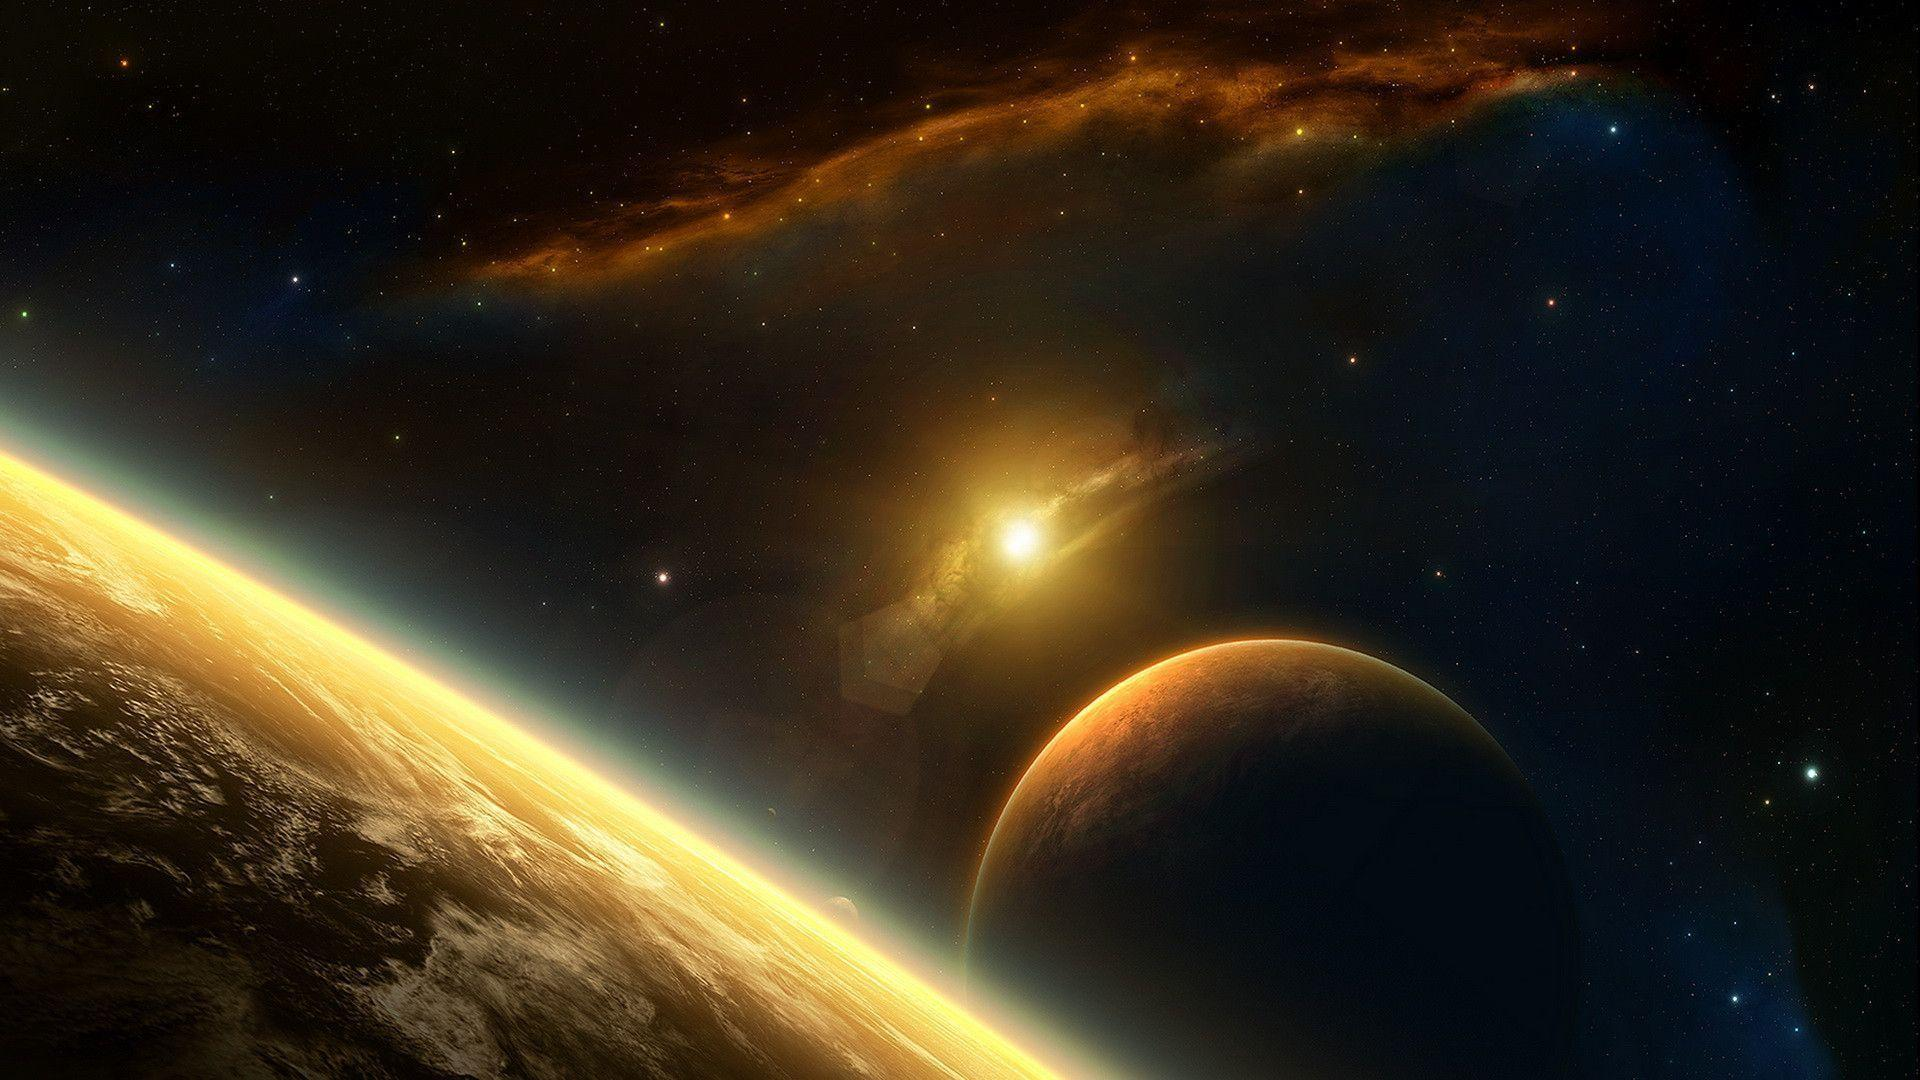 Planets wallpapers wallpaper cave - Solar system hd wallpapers 1080p ...